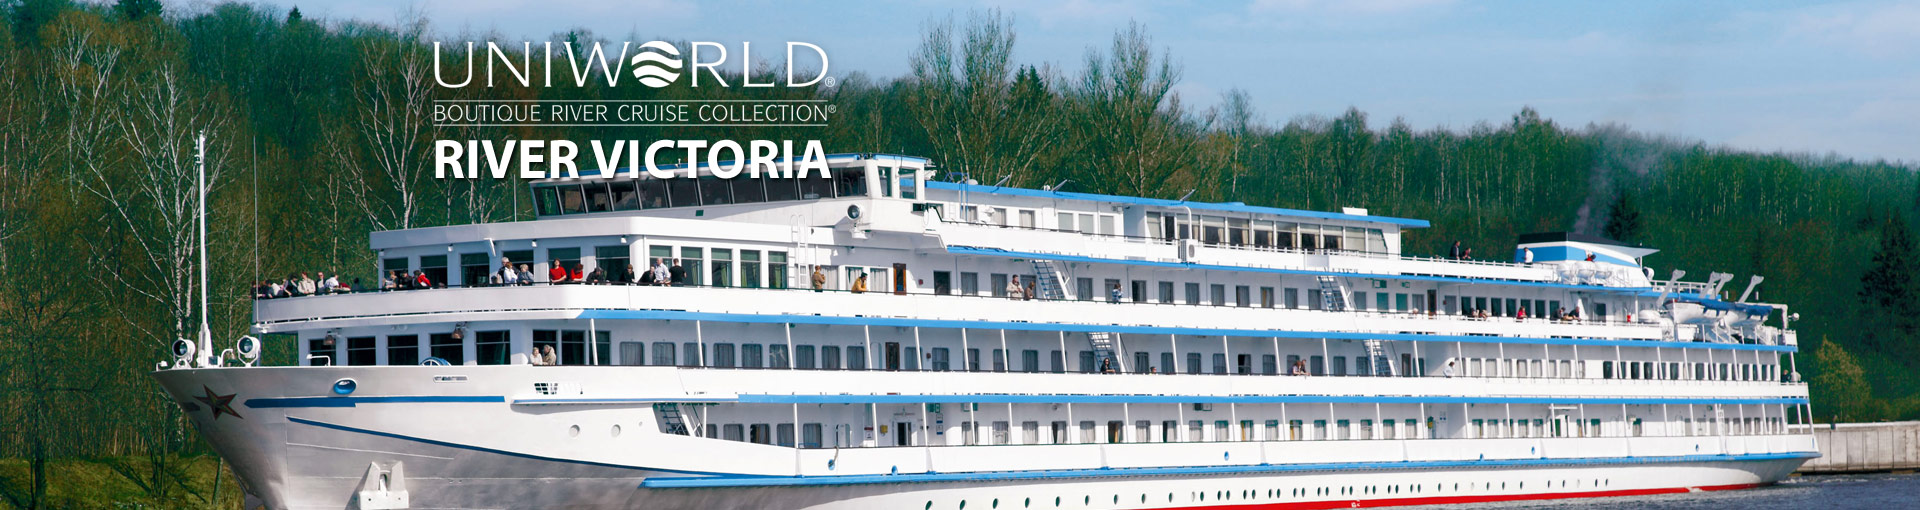 Uniworld River Cruises River Victoria river ship